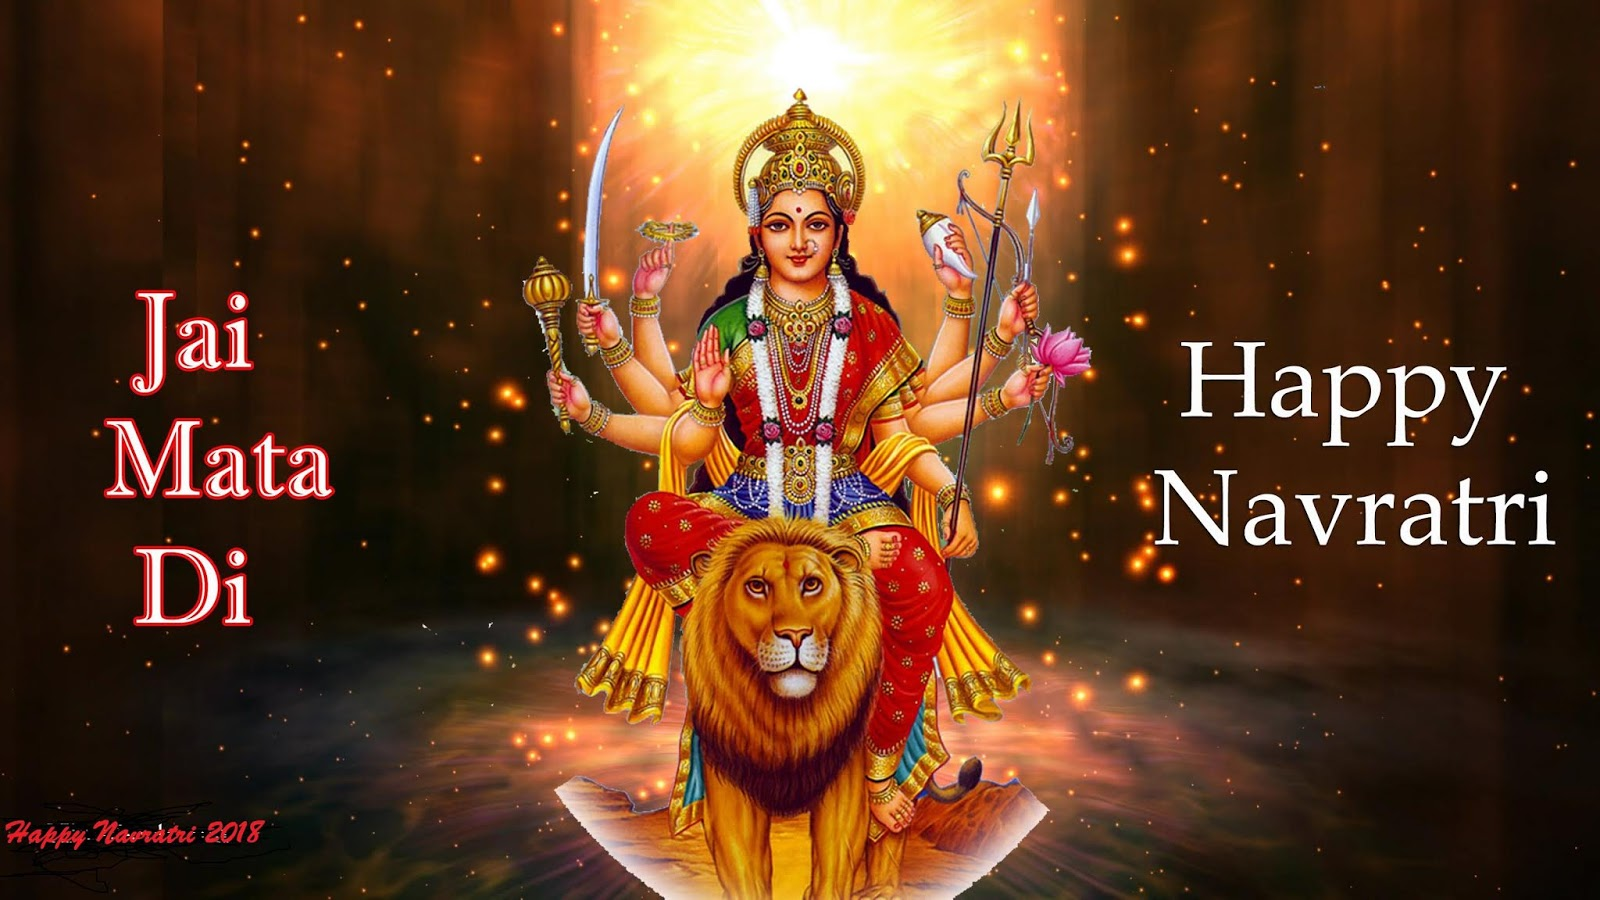 Happy Navratri Images Photos Wallpapers For Whatsapp Hd 2018 Happy